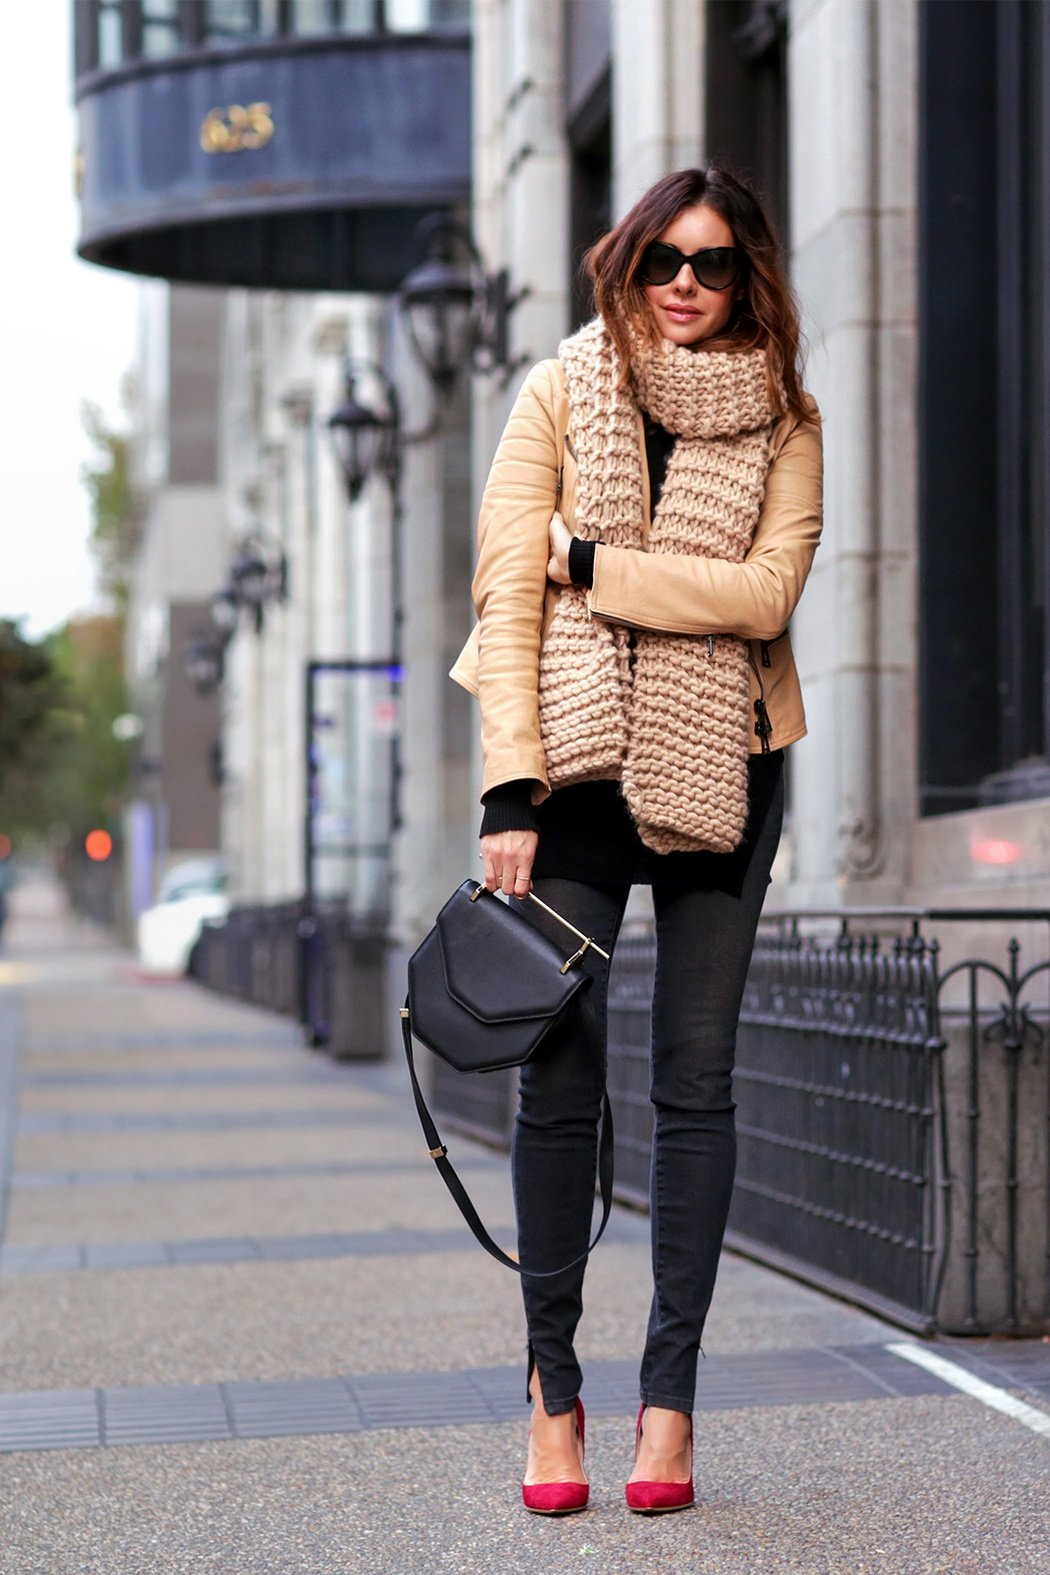 1eff4db5e5 The puffer jacket trend is experiencing a revival this season. Erica Hoida  accessorises this camel